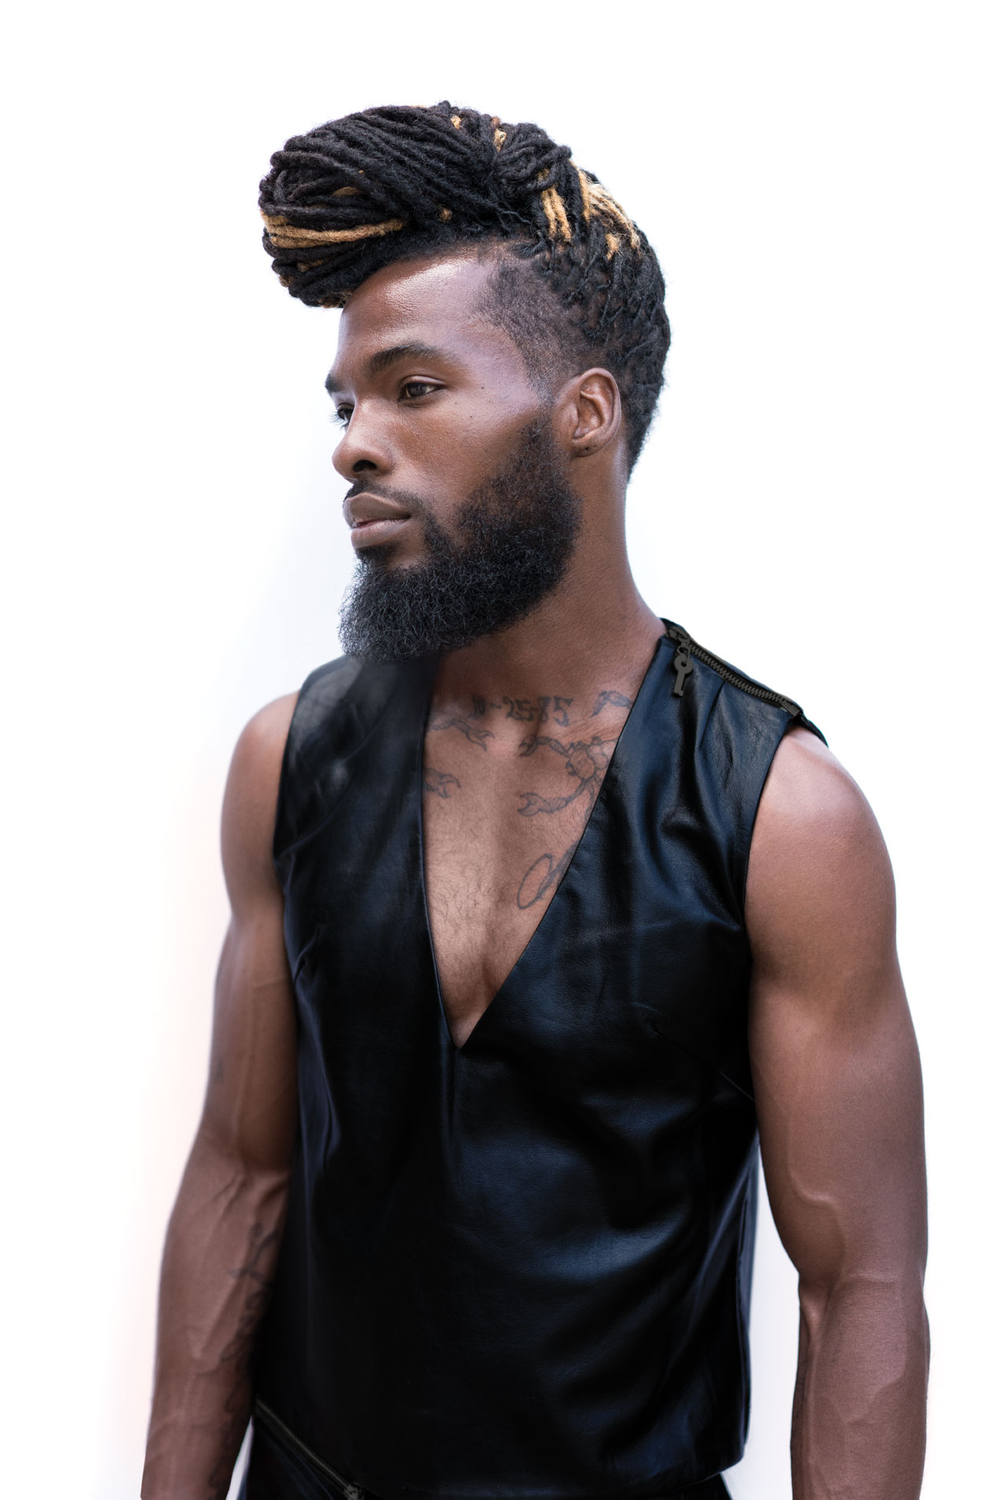 BabylissPRO designer Miranda Phipps braided the model's natural locks and tapered the sides with BaBylissPRO fx880 clipper, then lined him up with the Volare x2 trimmer. The look was sealed with Aquage Beyond Shine and diffused with the Rapido dryer.